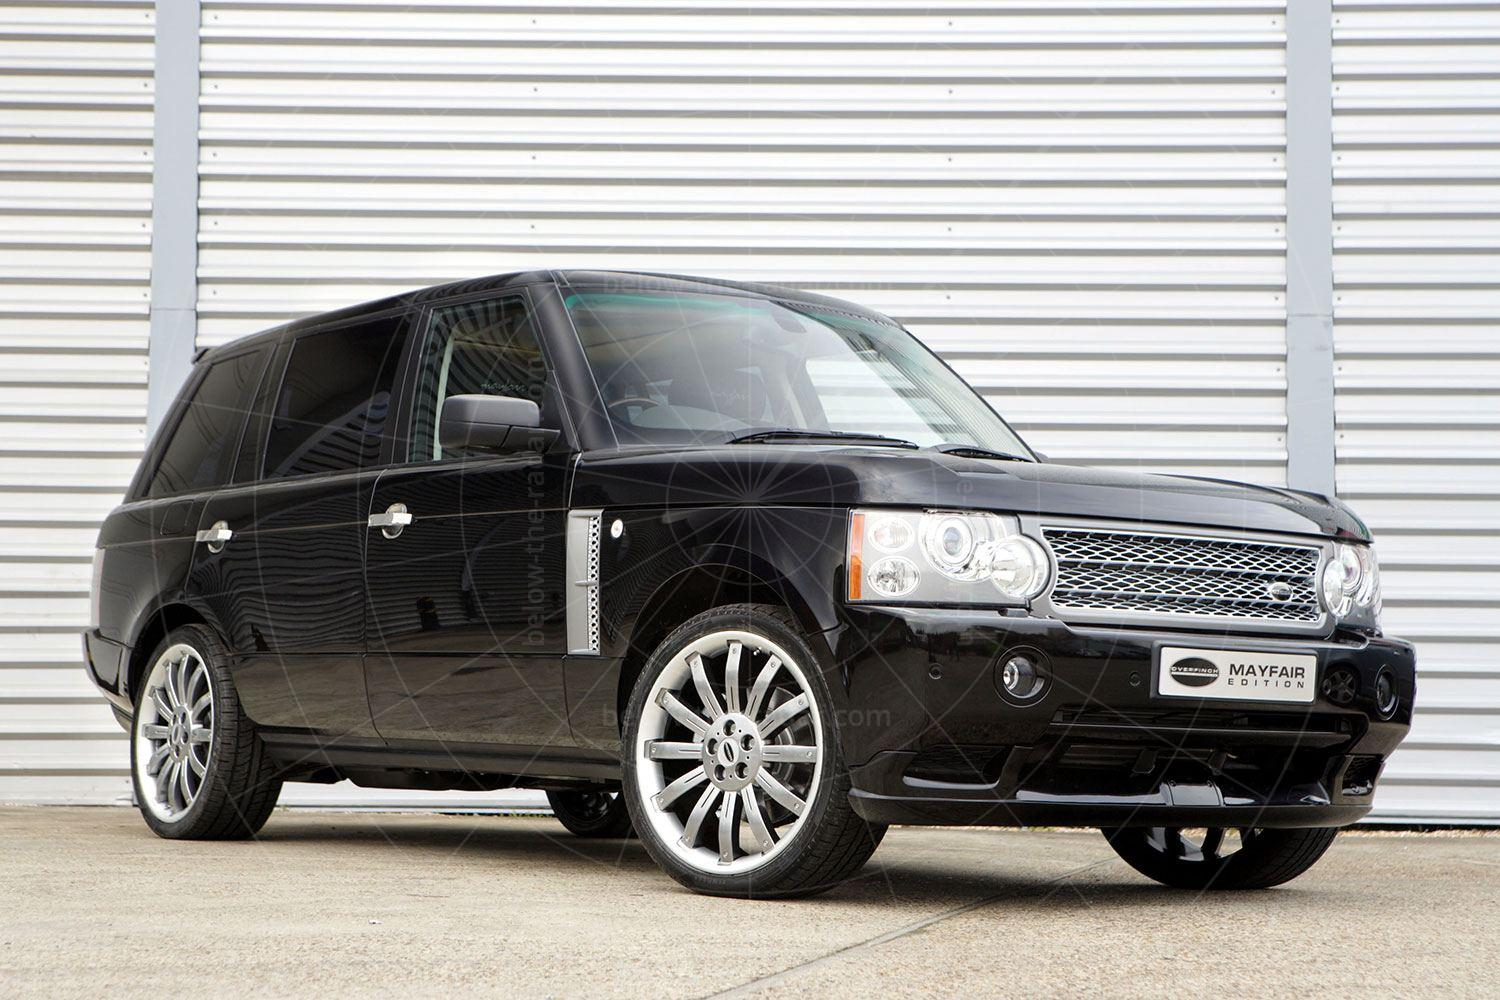 Range Rover Mayfair